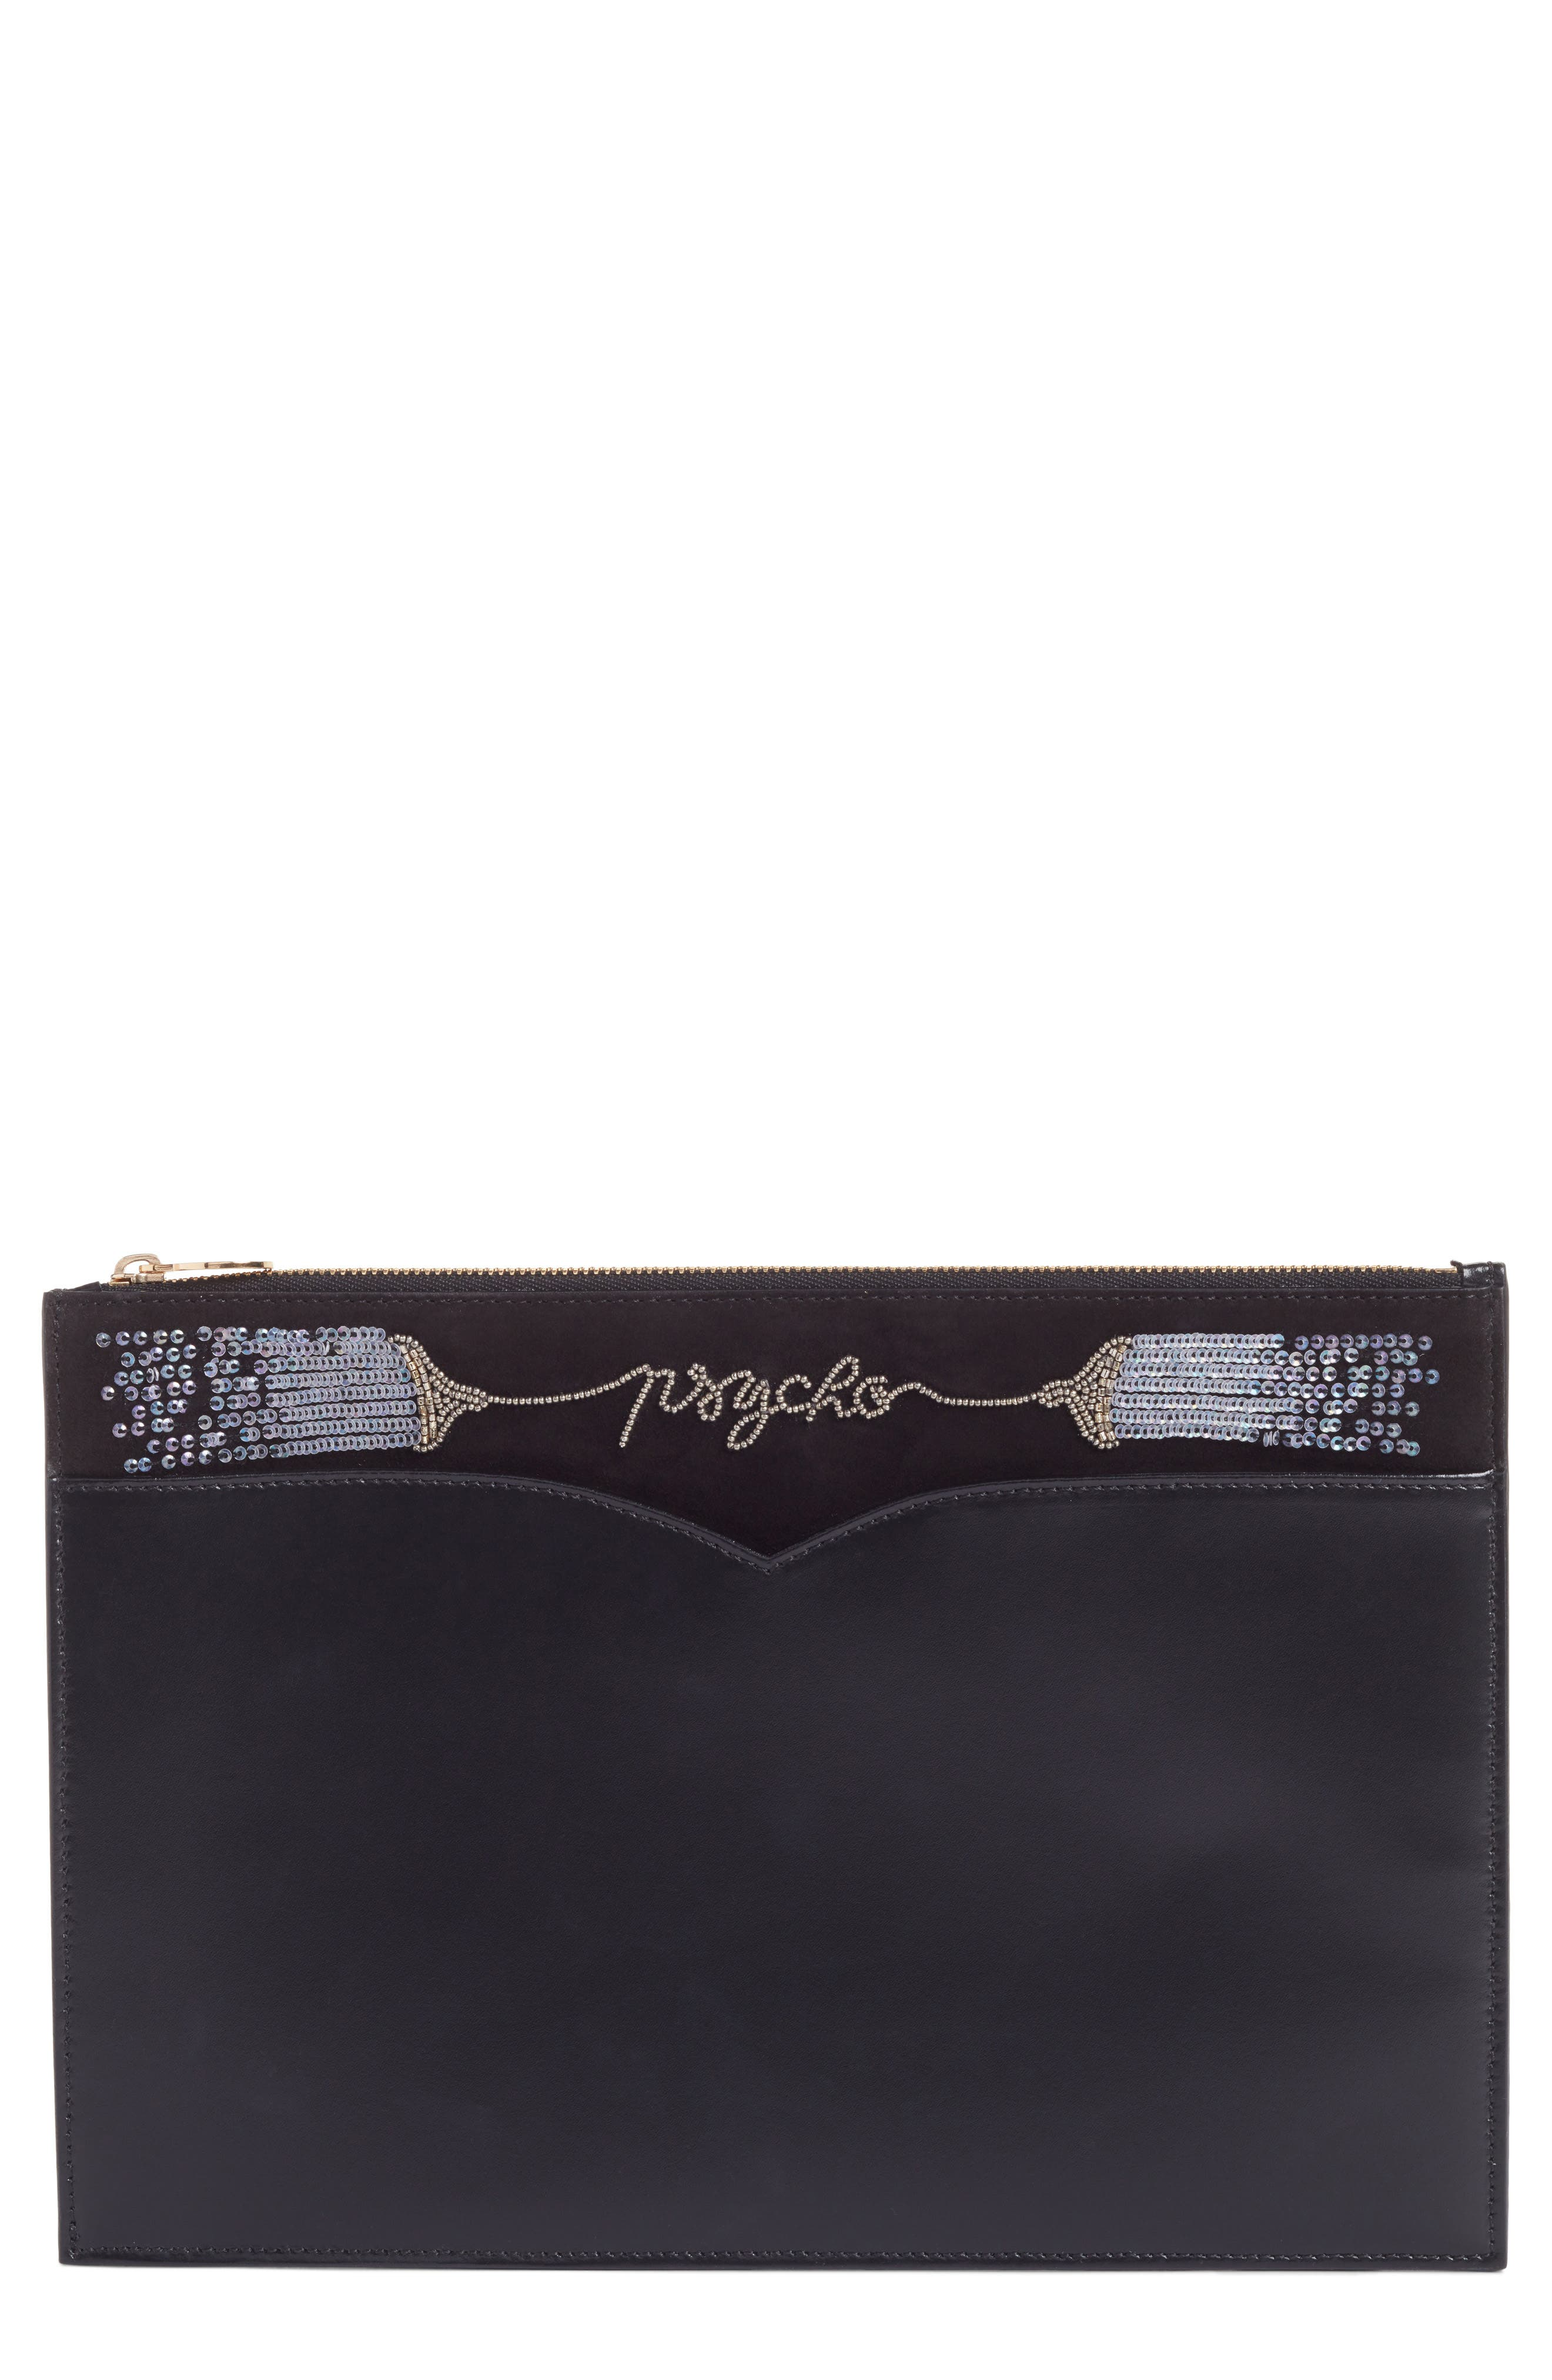 Medium Embellished Leather Zip Pouch,                         Main,                         color, 001